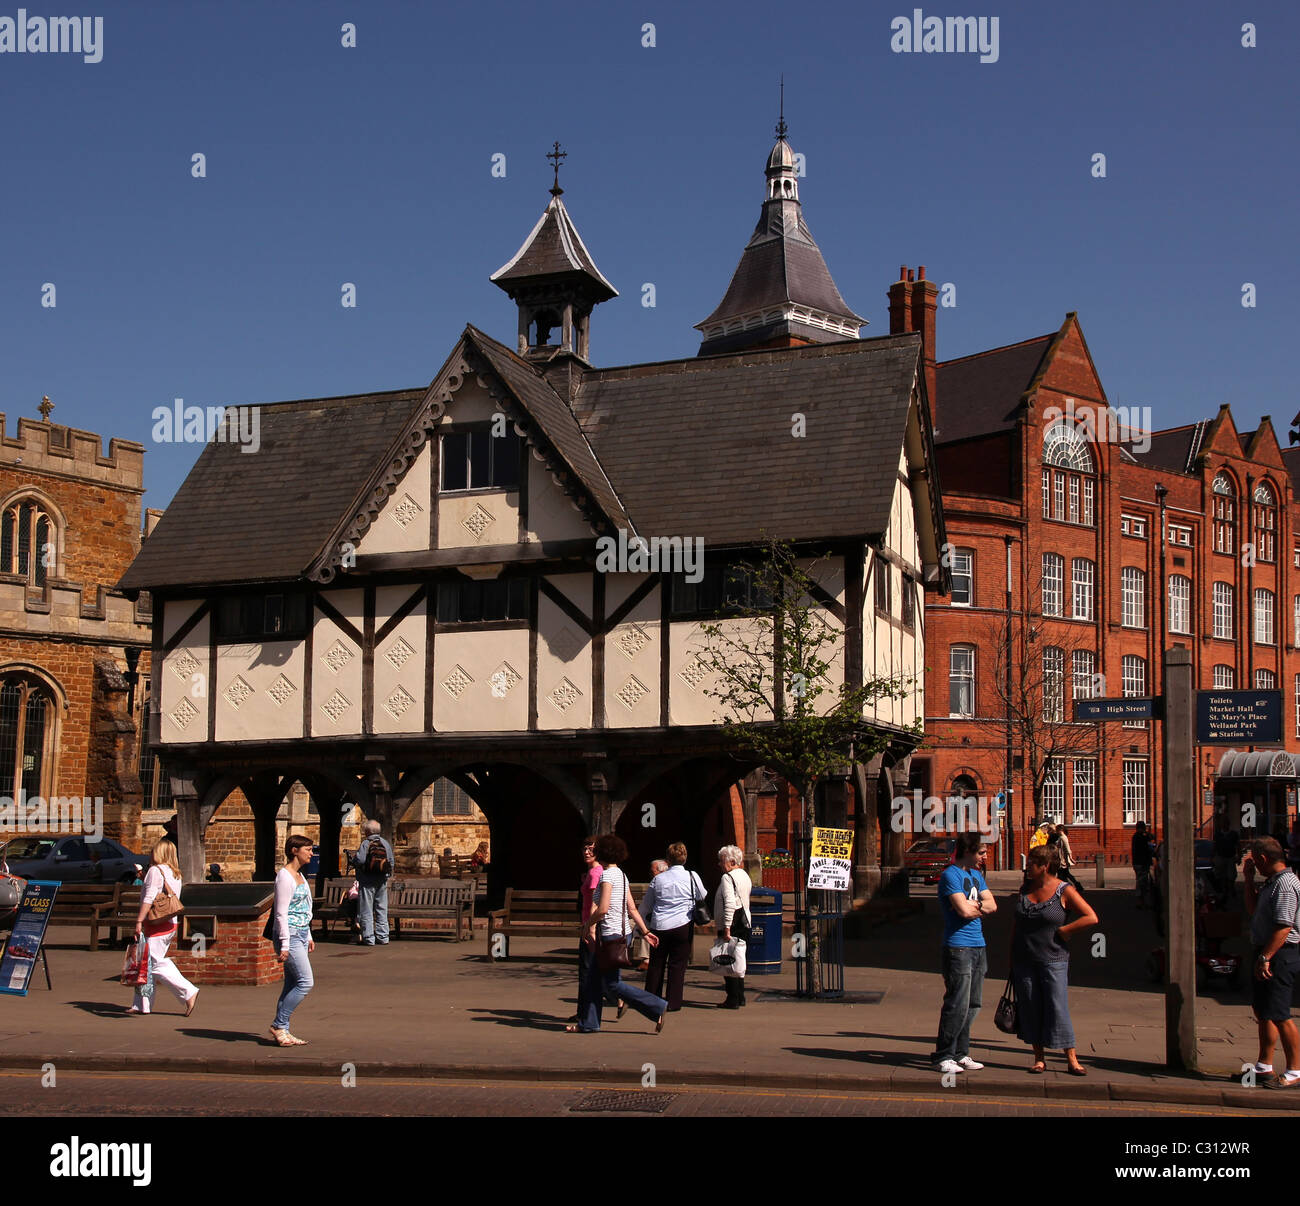 The Old Grammar School, Market Harborough, Leicestershire, England, UK - Stock Image